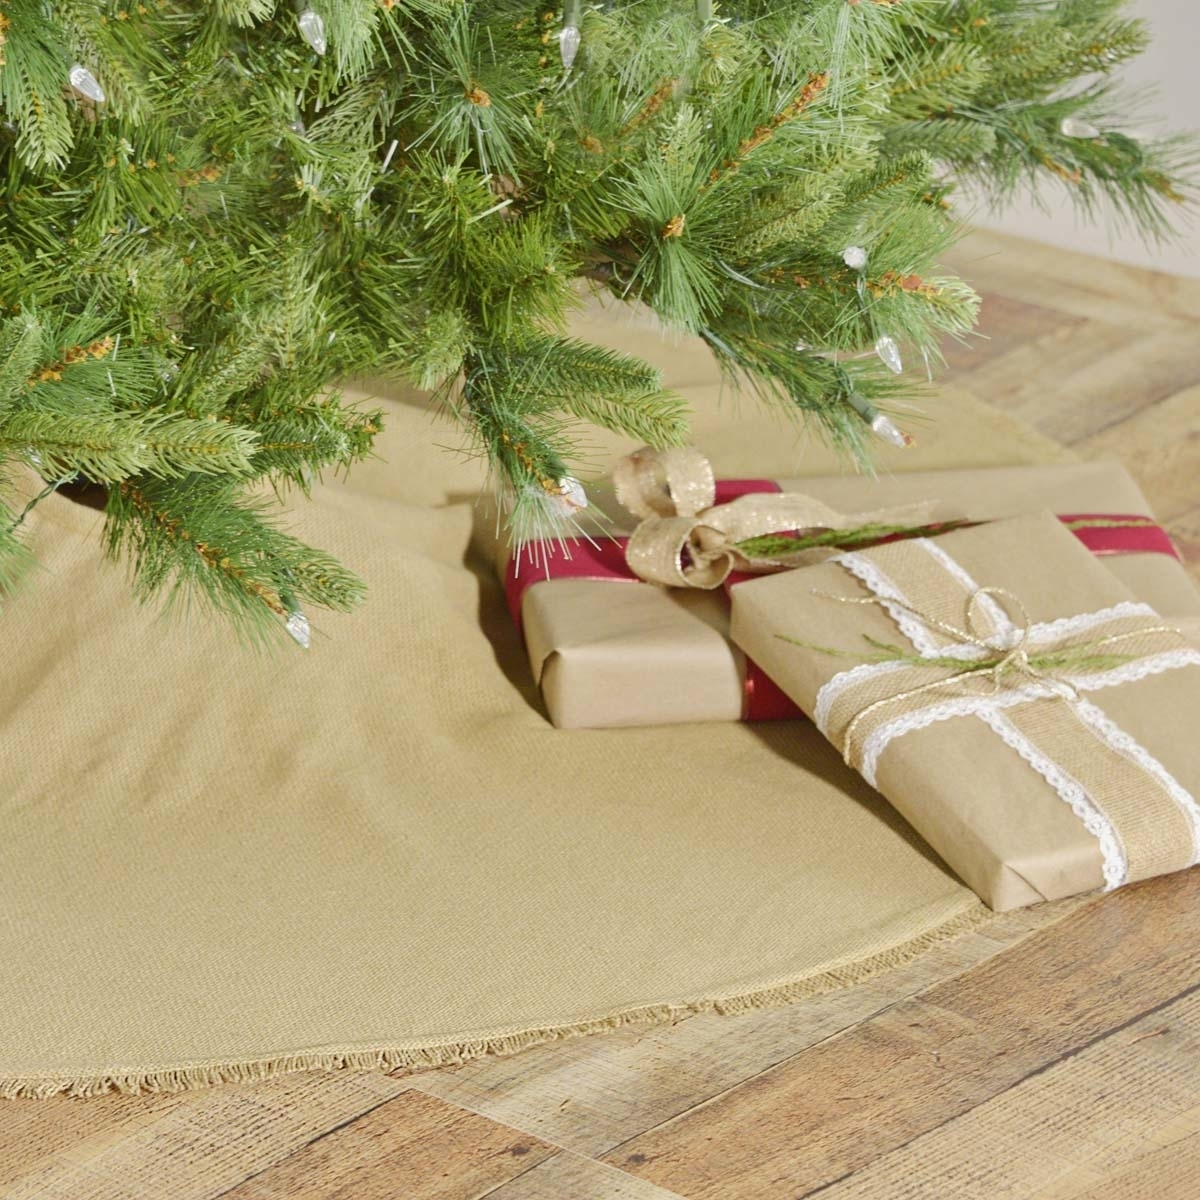 Seasonal Holiday Festive Red Burlap Tree Skirt Christmas Home Decoration Decorations From Bowstring 48 55 Dhgate Com